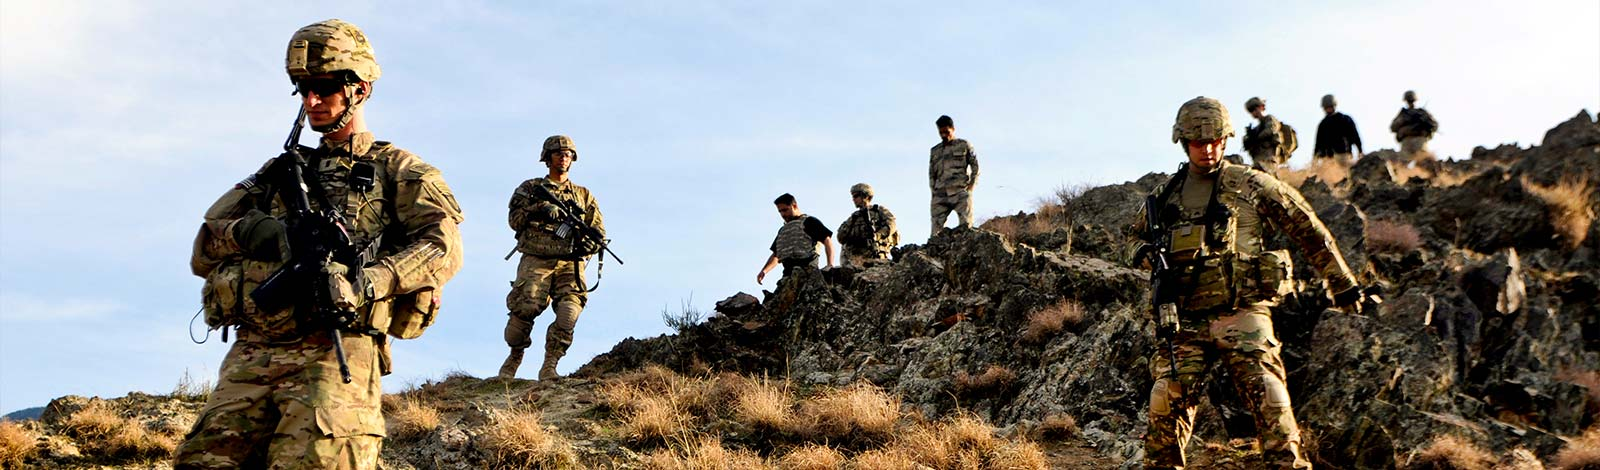 U.S. Army Features Army 101 | Explore Army Culture, Professions and Programs